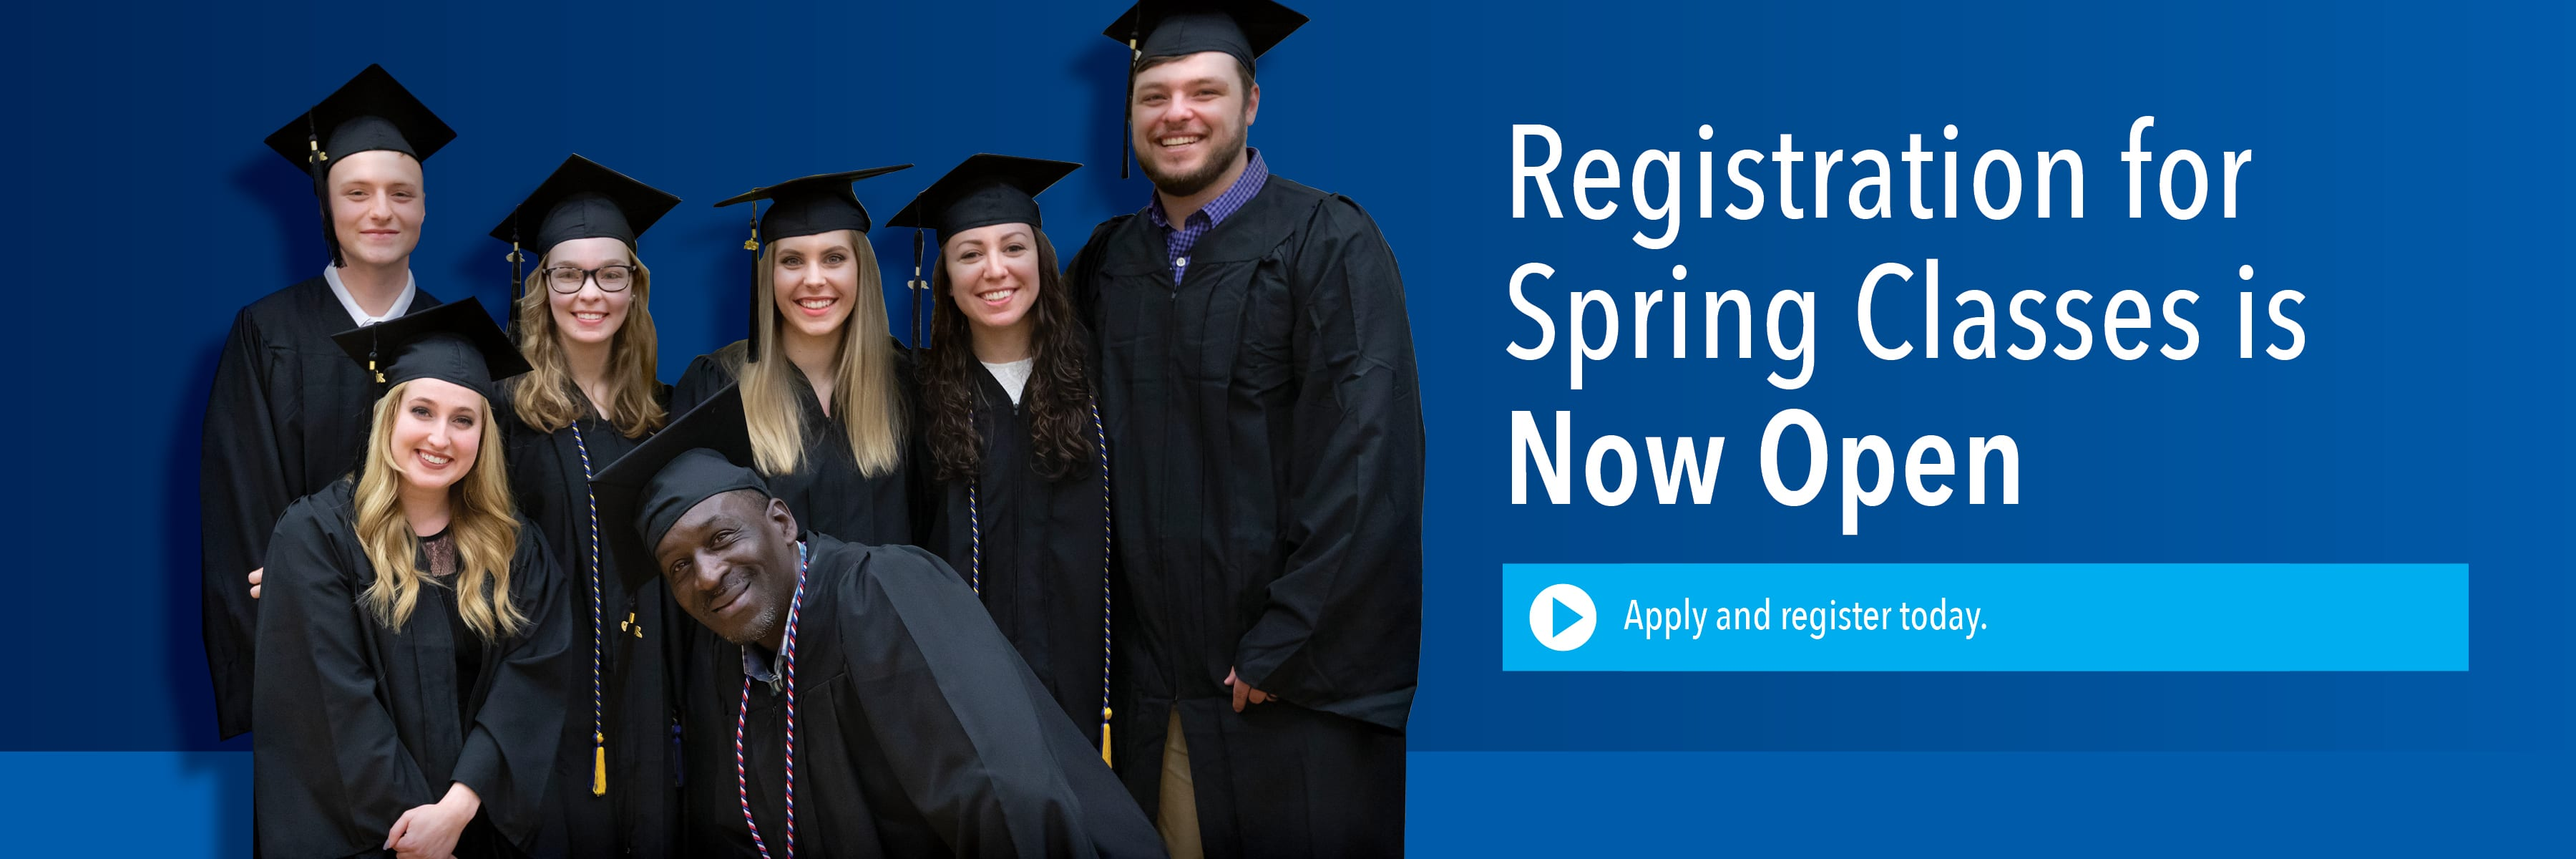 Registration for Spring Classes is now open. Apply and register today.